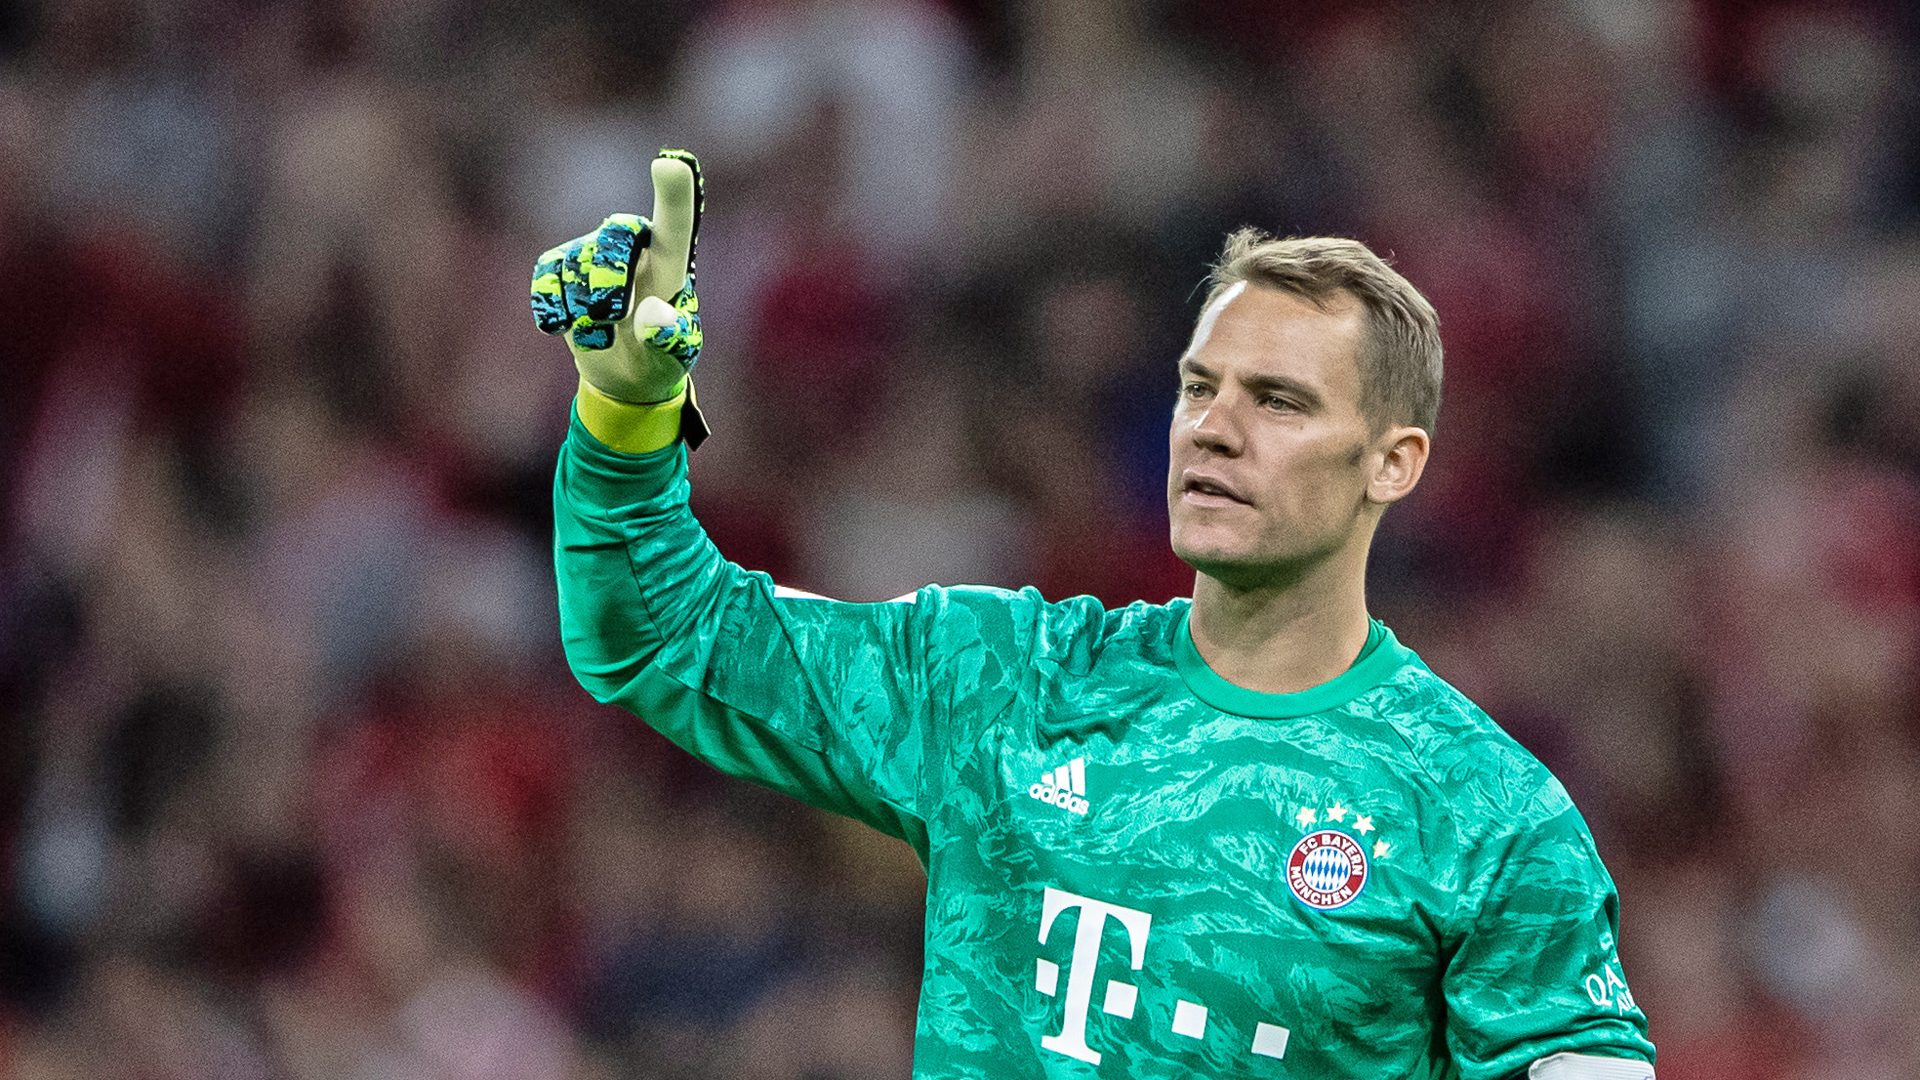 Bundesliga | Manuel Neuer signs new Bayern Munich contract